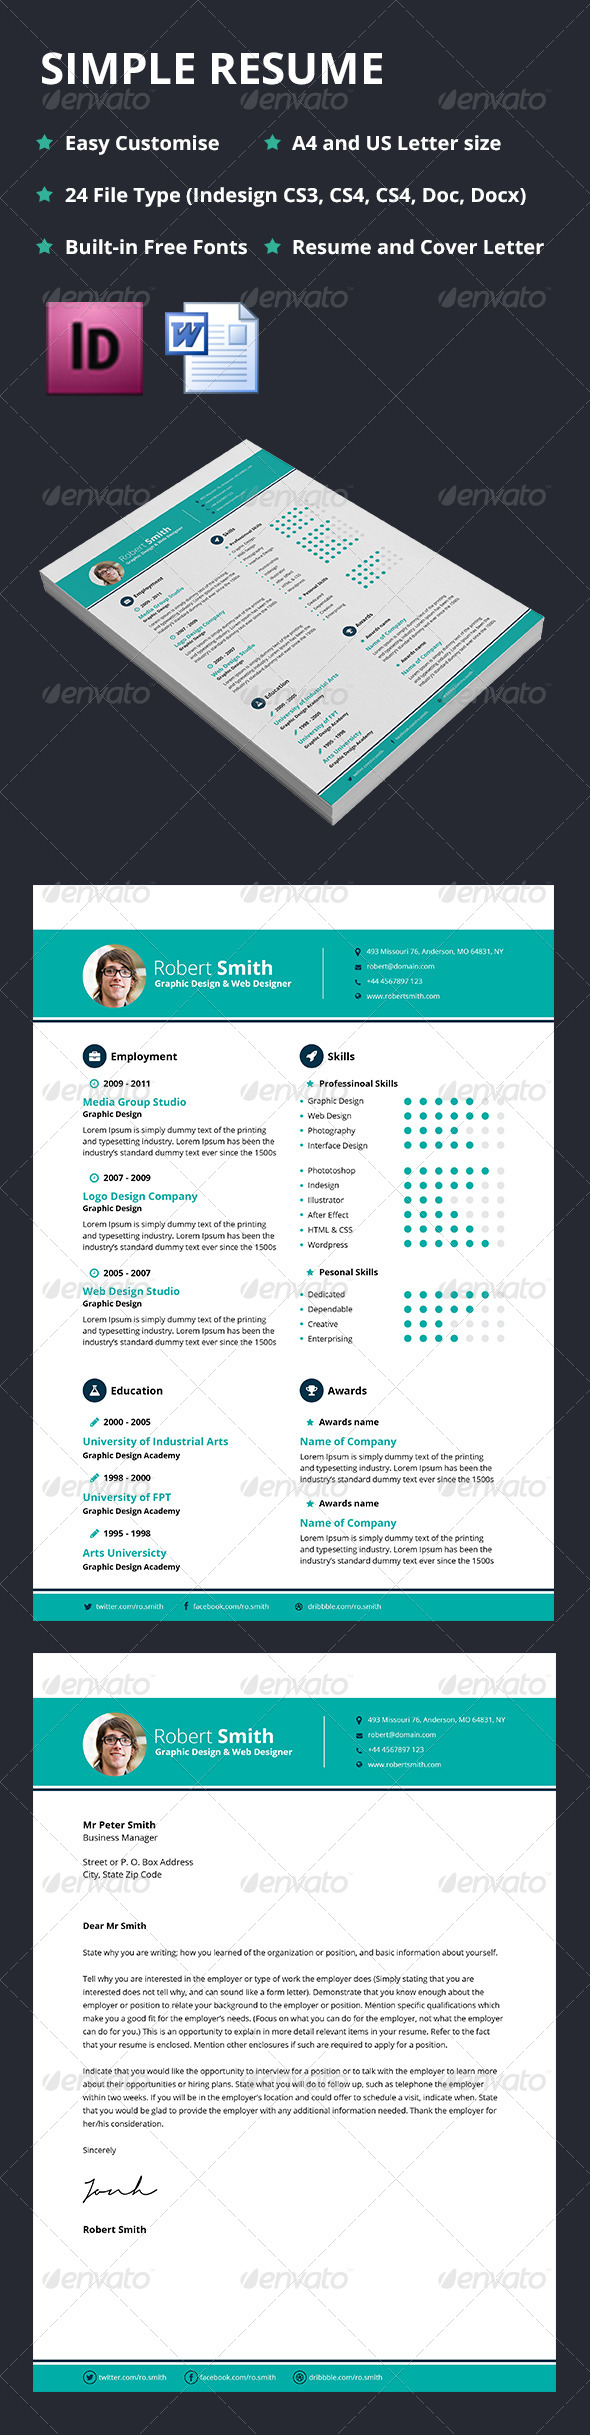 GraphicRiver Simple Resume 5426862